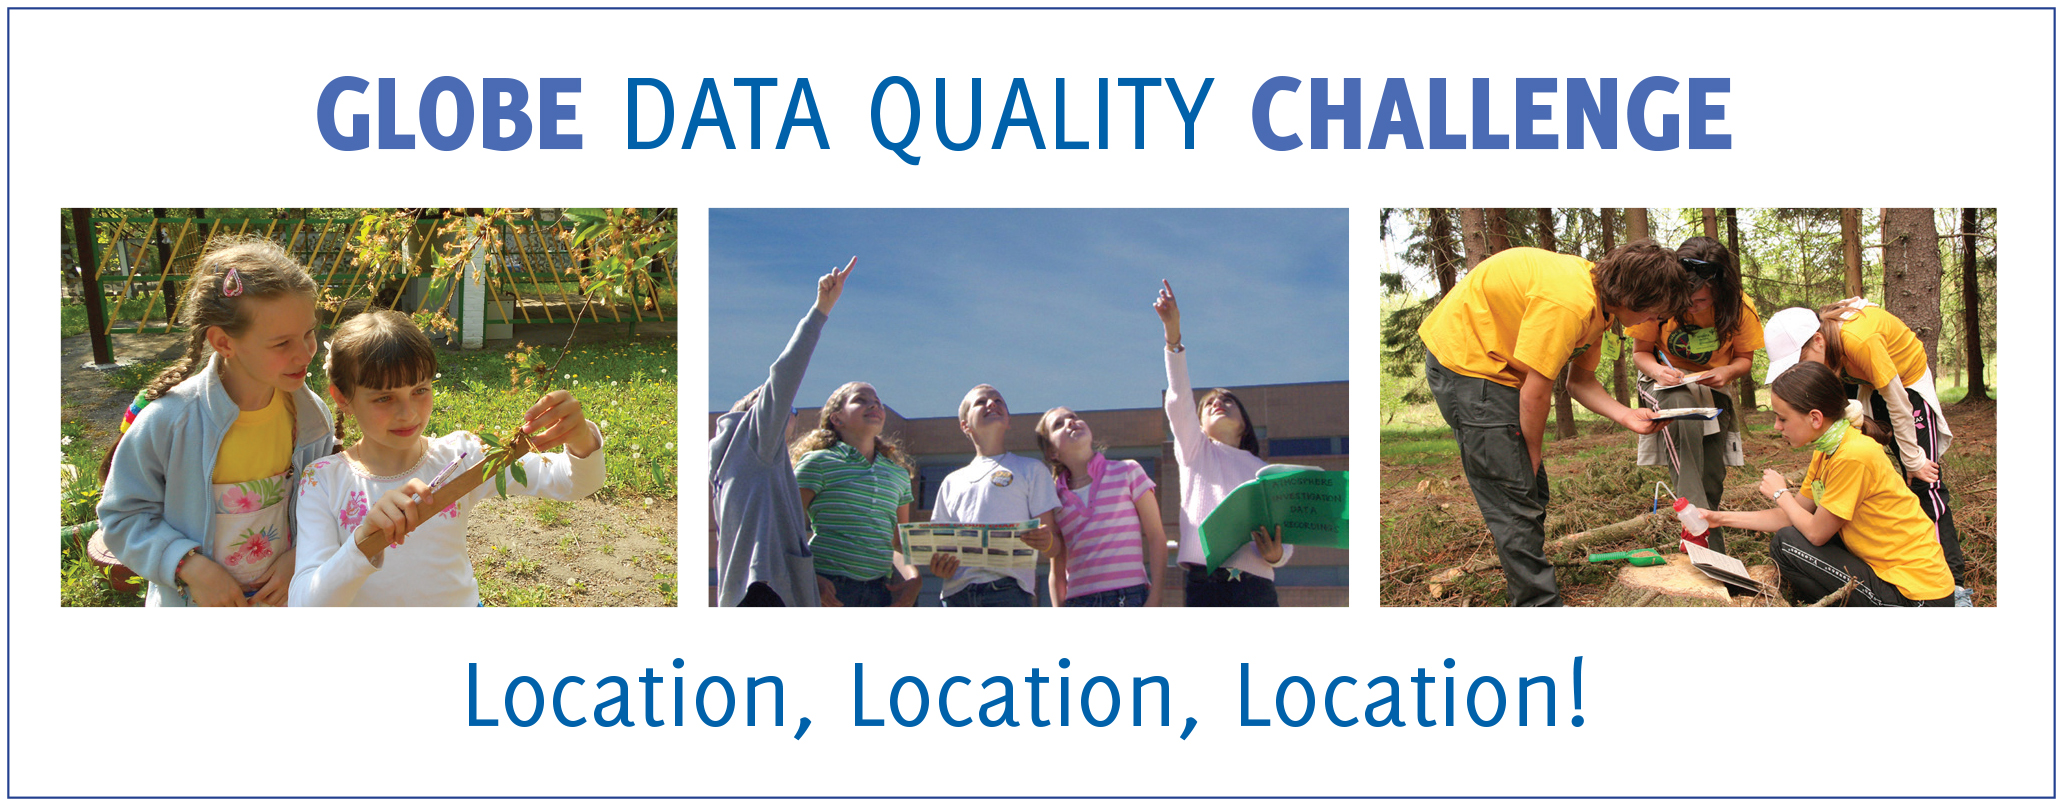 Data Quality Challenge 2016 Banner